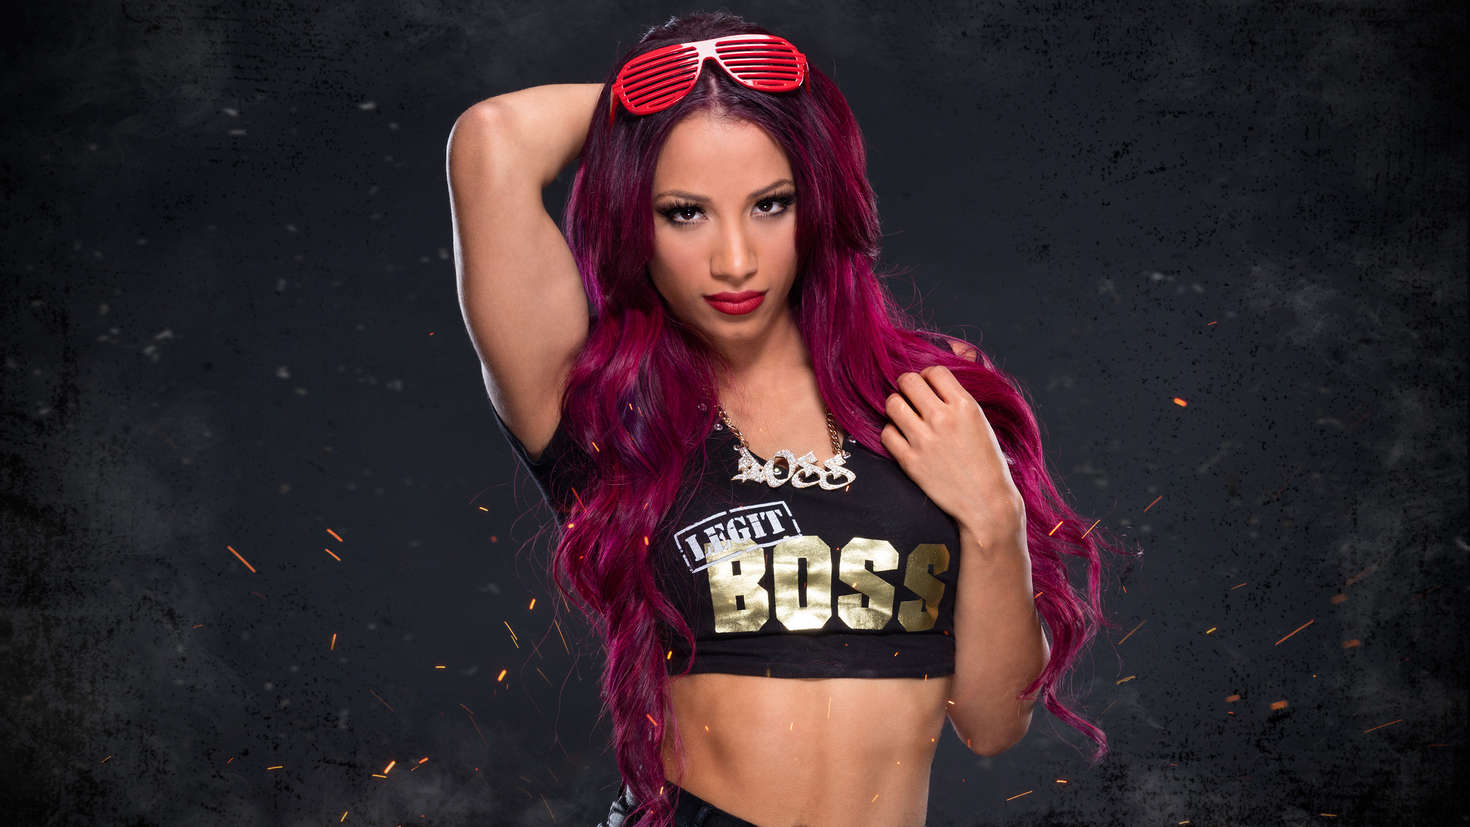 2016 wwe diva wallpapers - photo #3